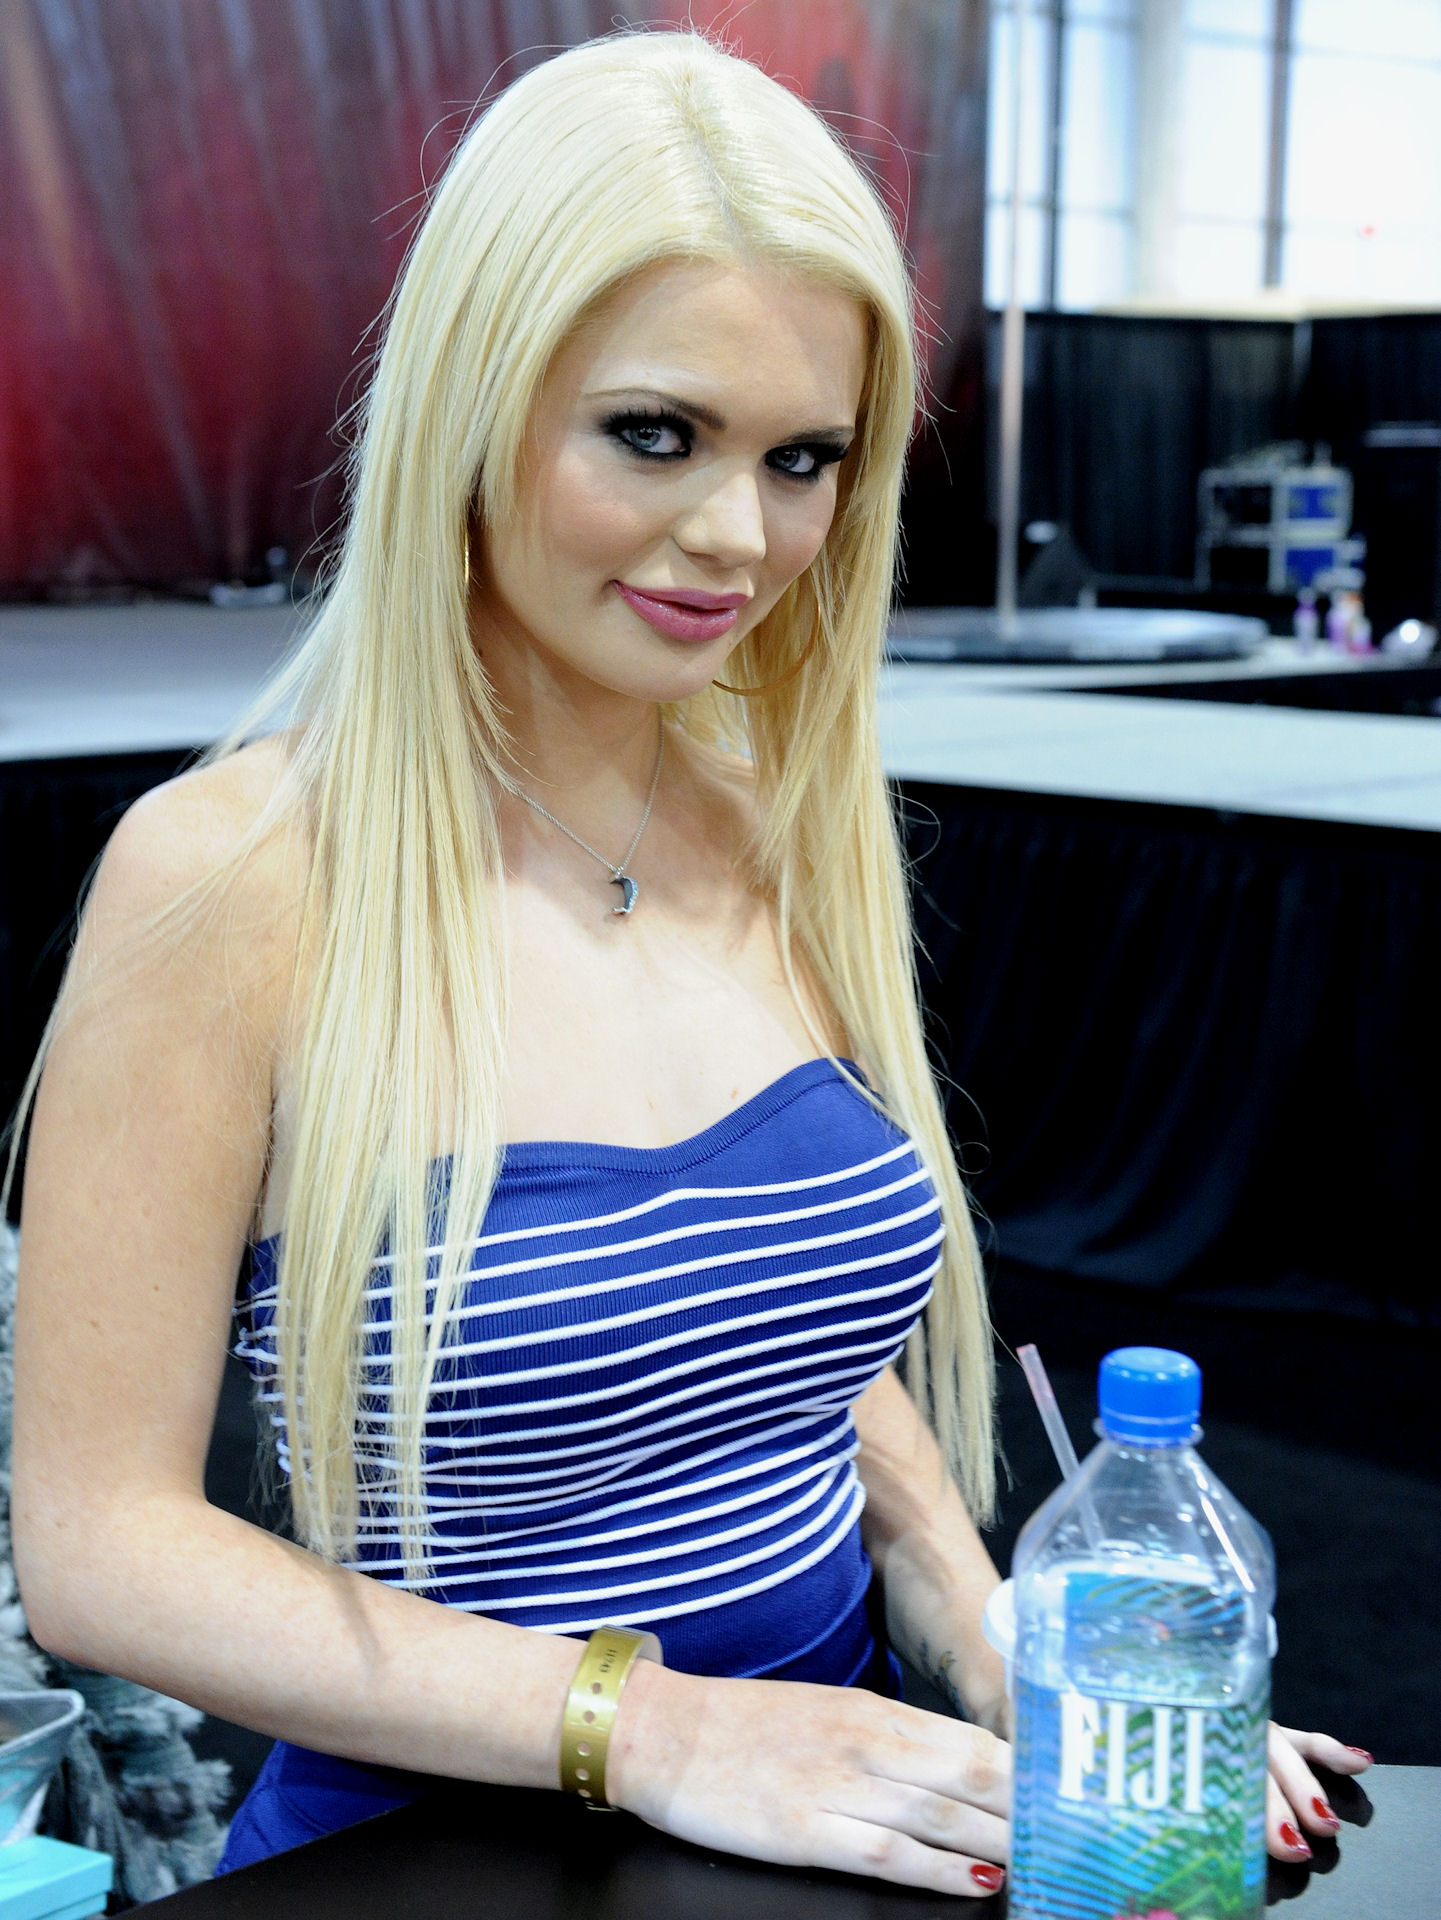 Alexis Ford file:alexis ford at avn adult entertainment expo 2011